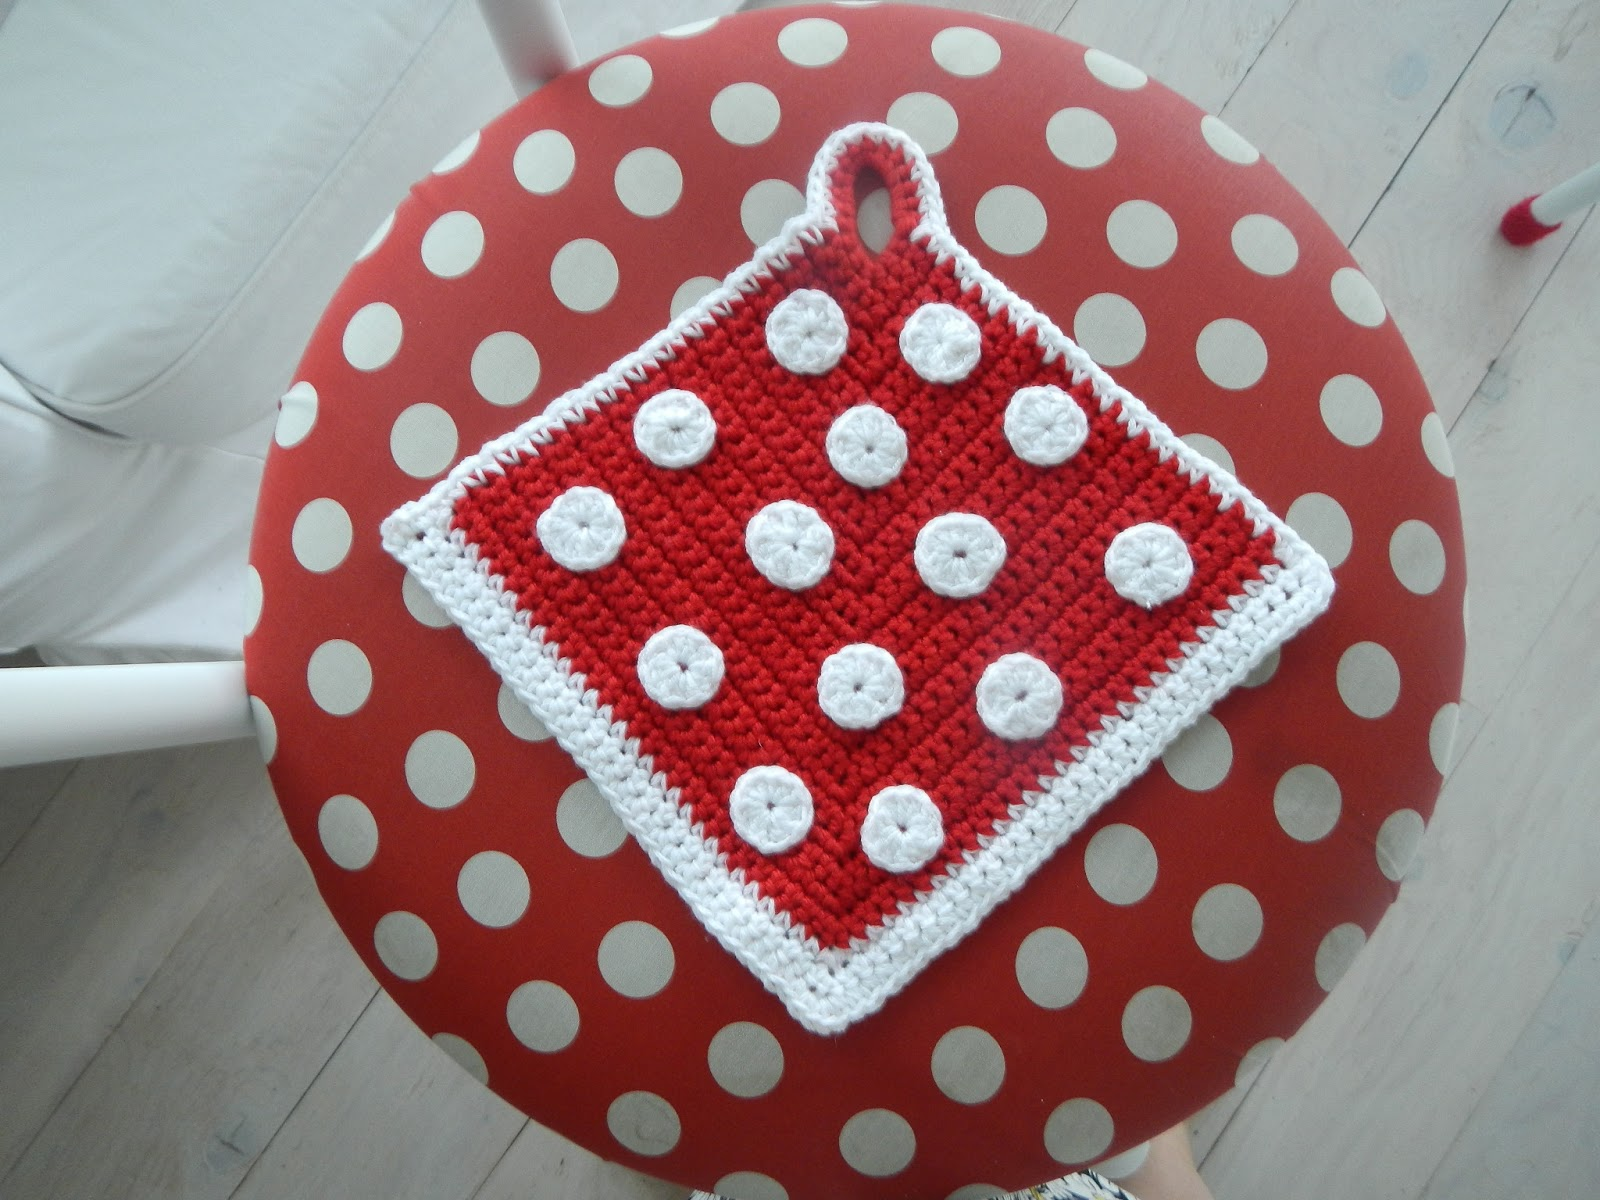 Apple Blossom Dreams Red And White Polka Dots